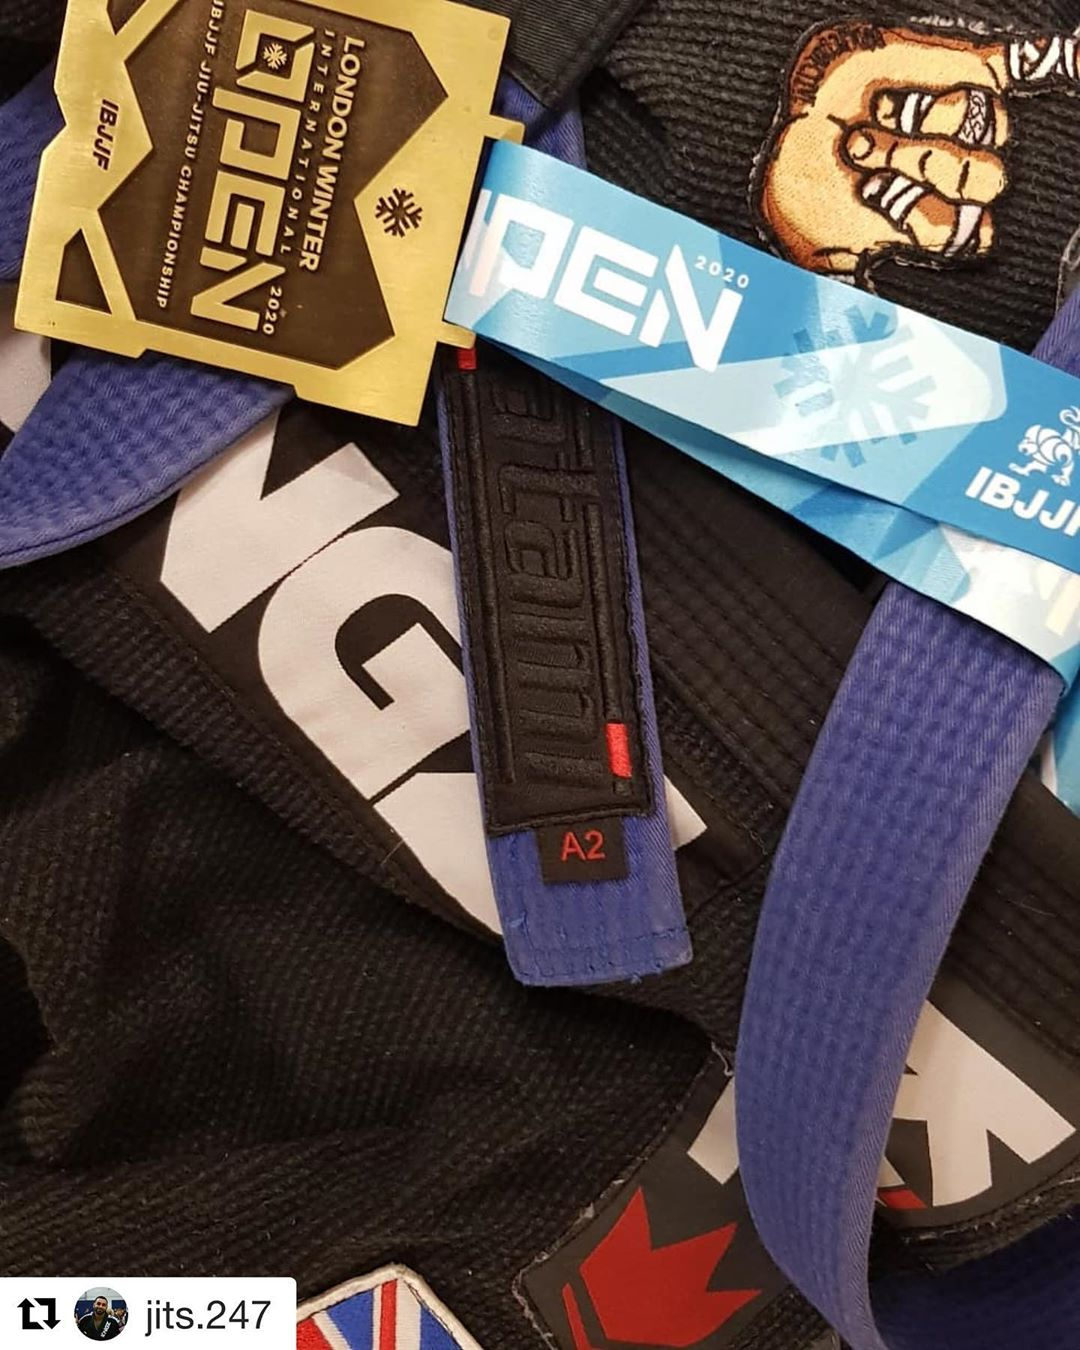 IBJJF Bronze Medal at the London Open